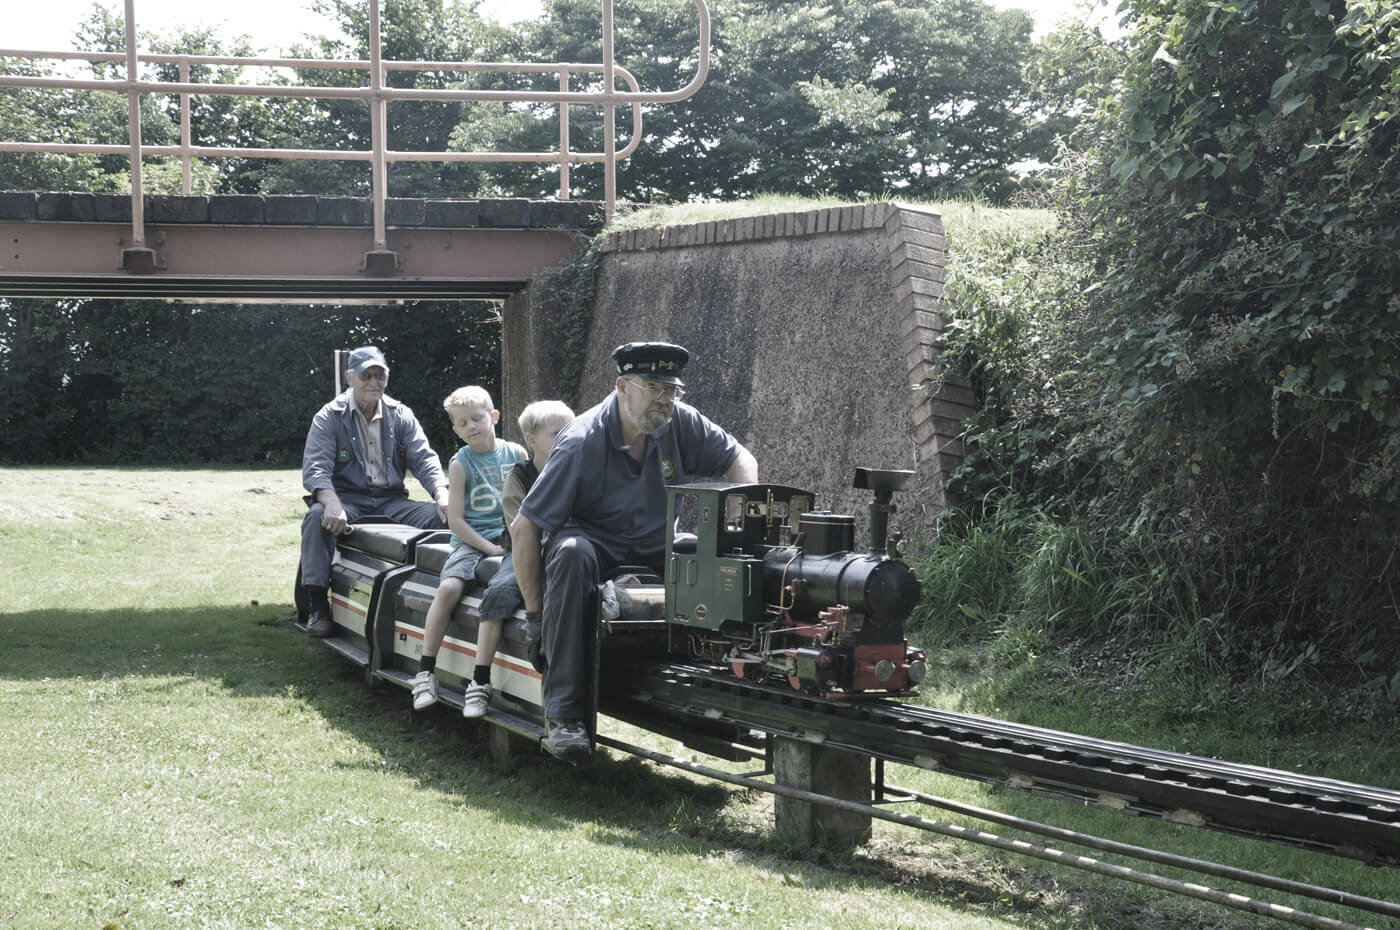 Traditional May Day Celebration at Avoncroft